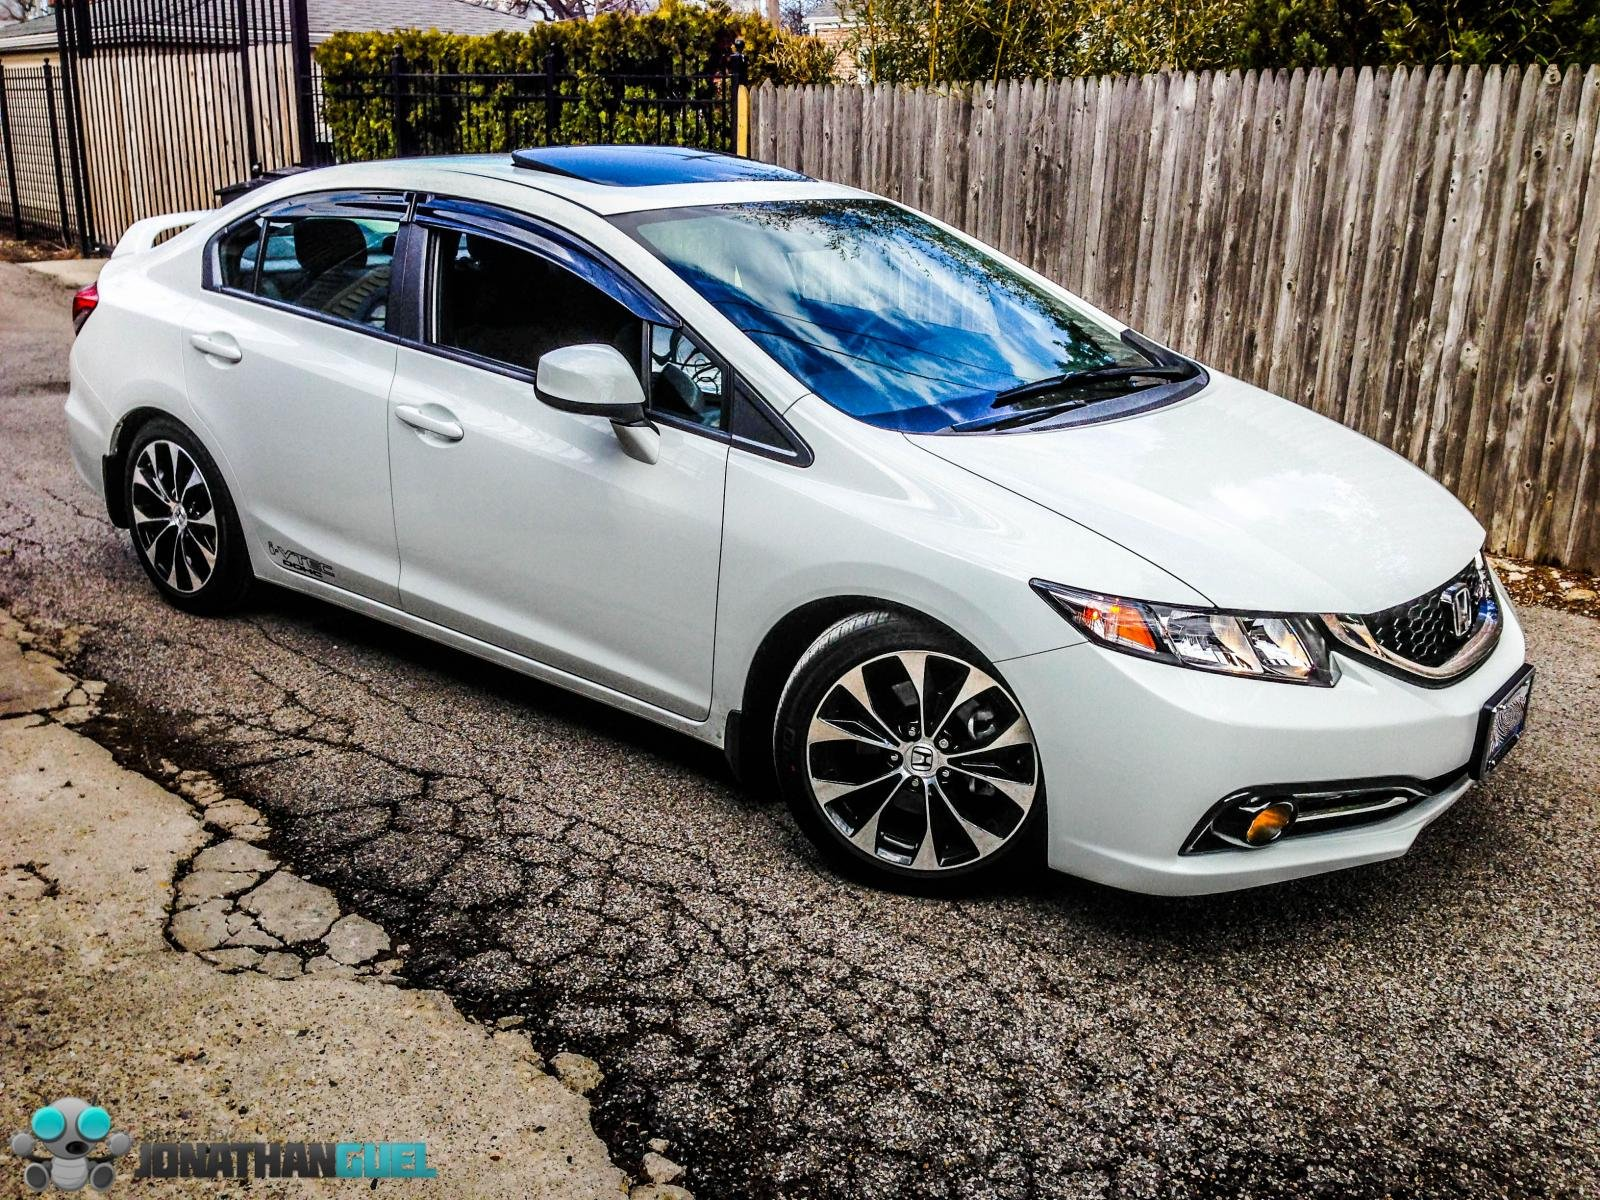 Honda Civic Si 2013 White